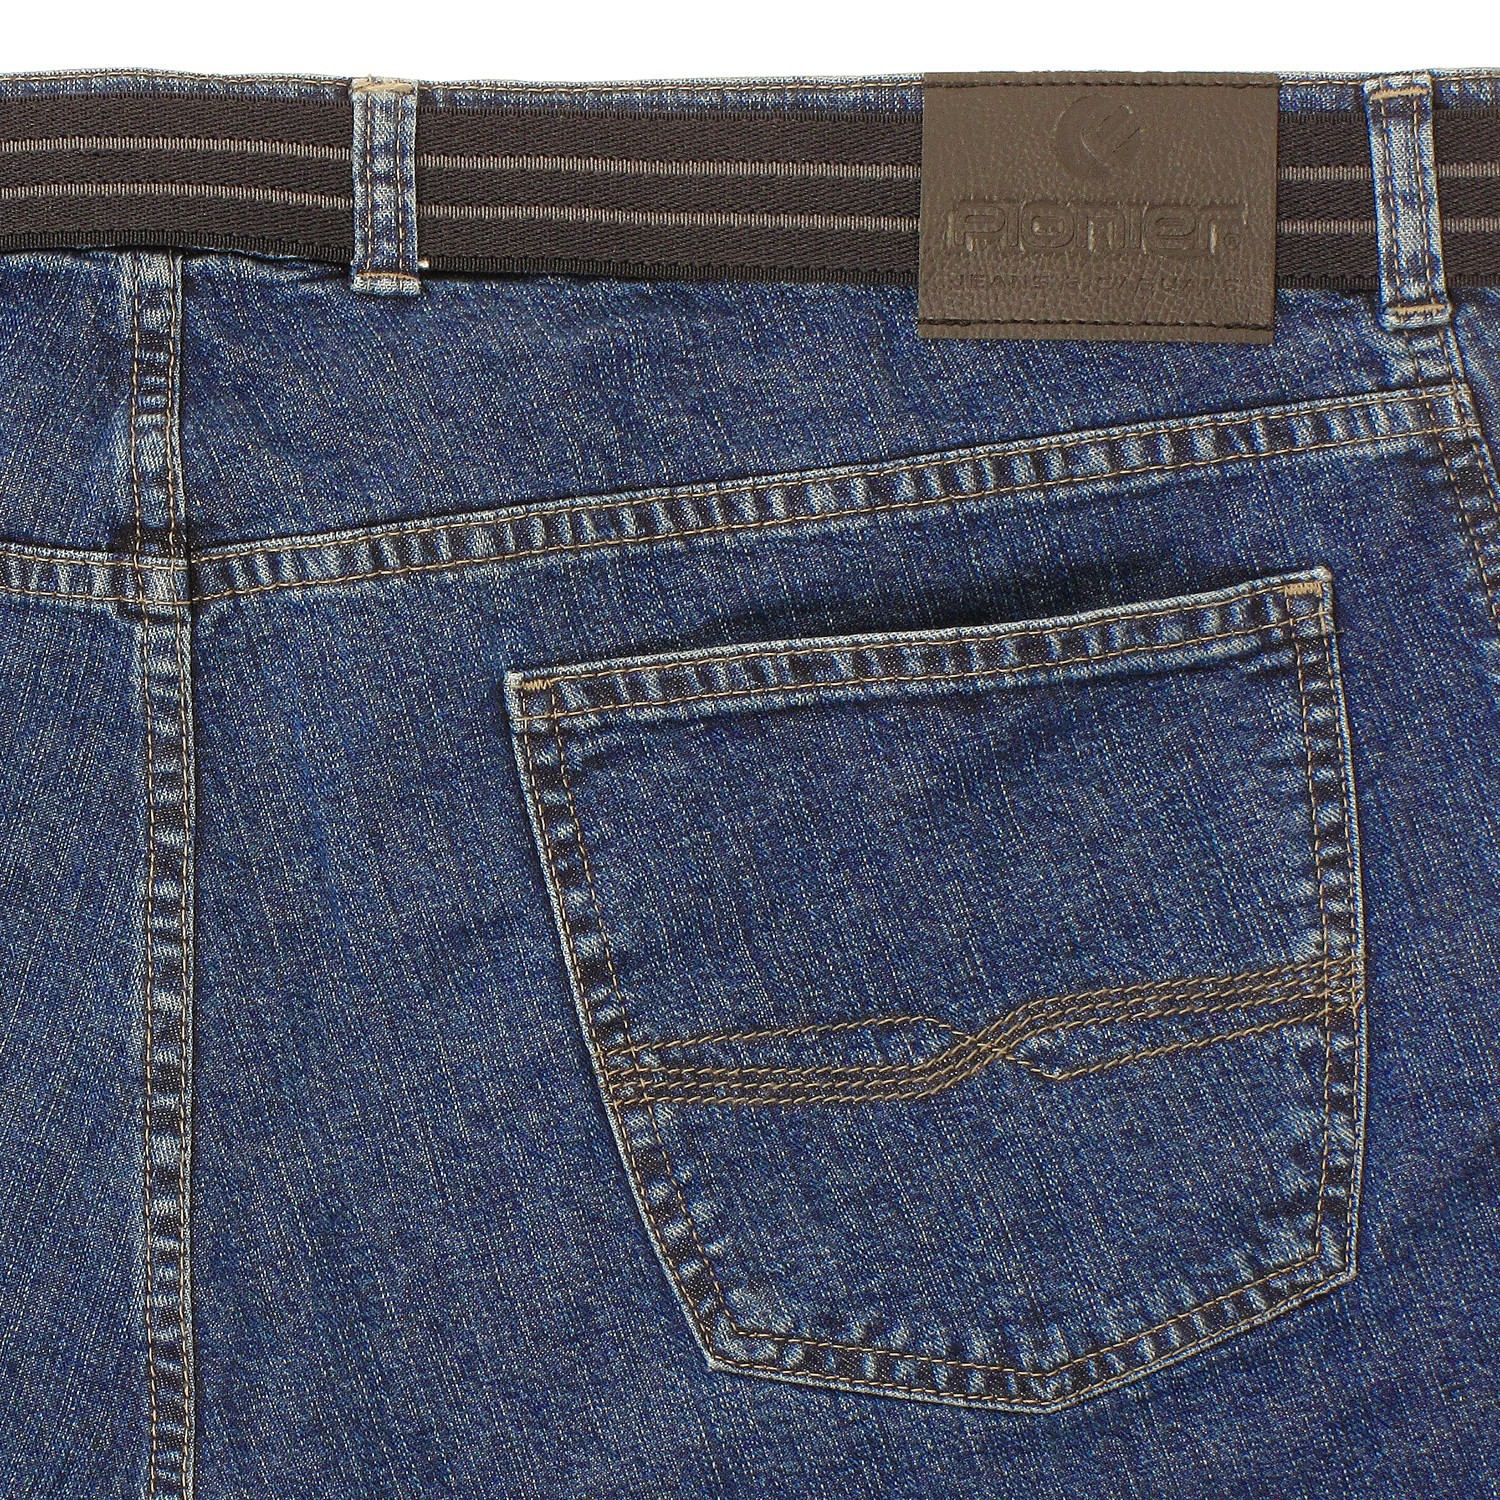 Detail Image to Stone-washed five-pocket-jeans by Pionier in extra large sizes up to 40, 70 and 85